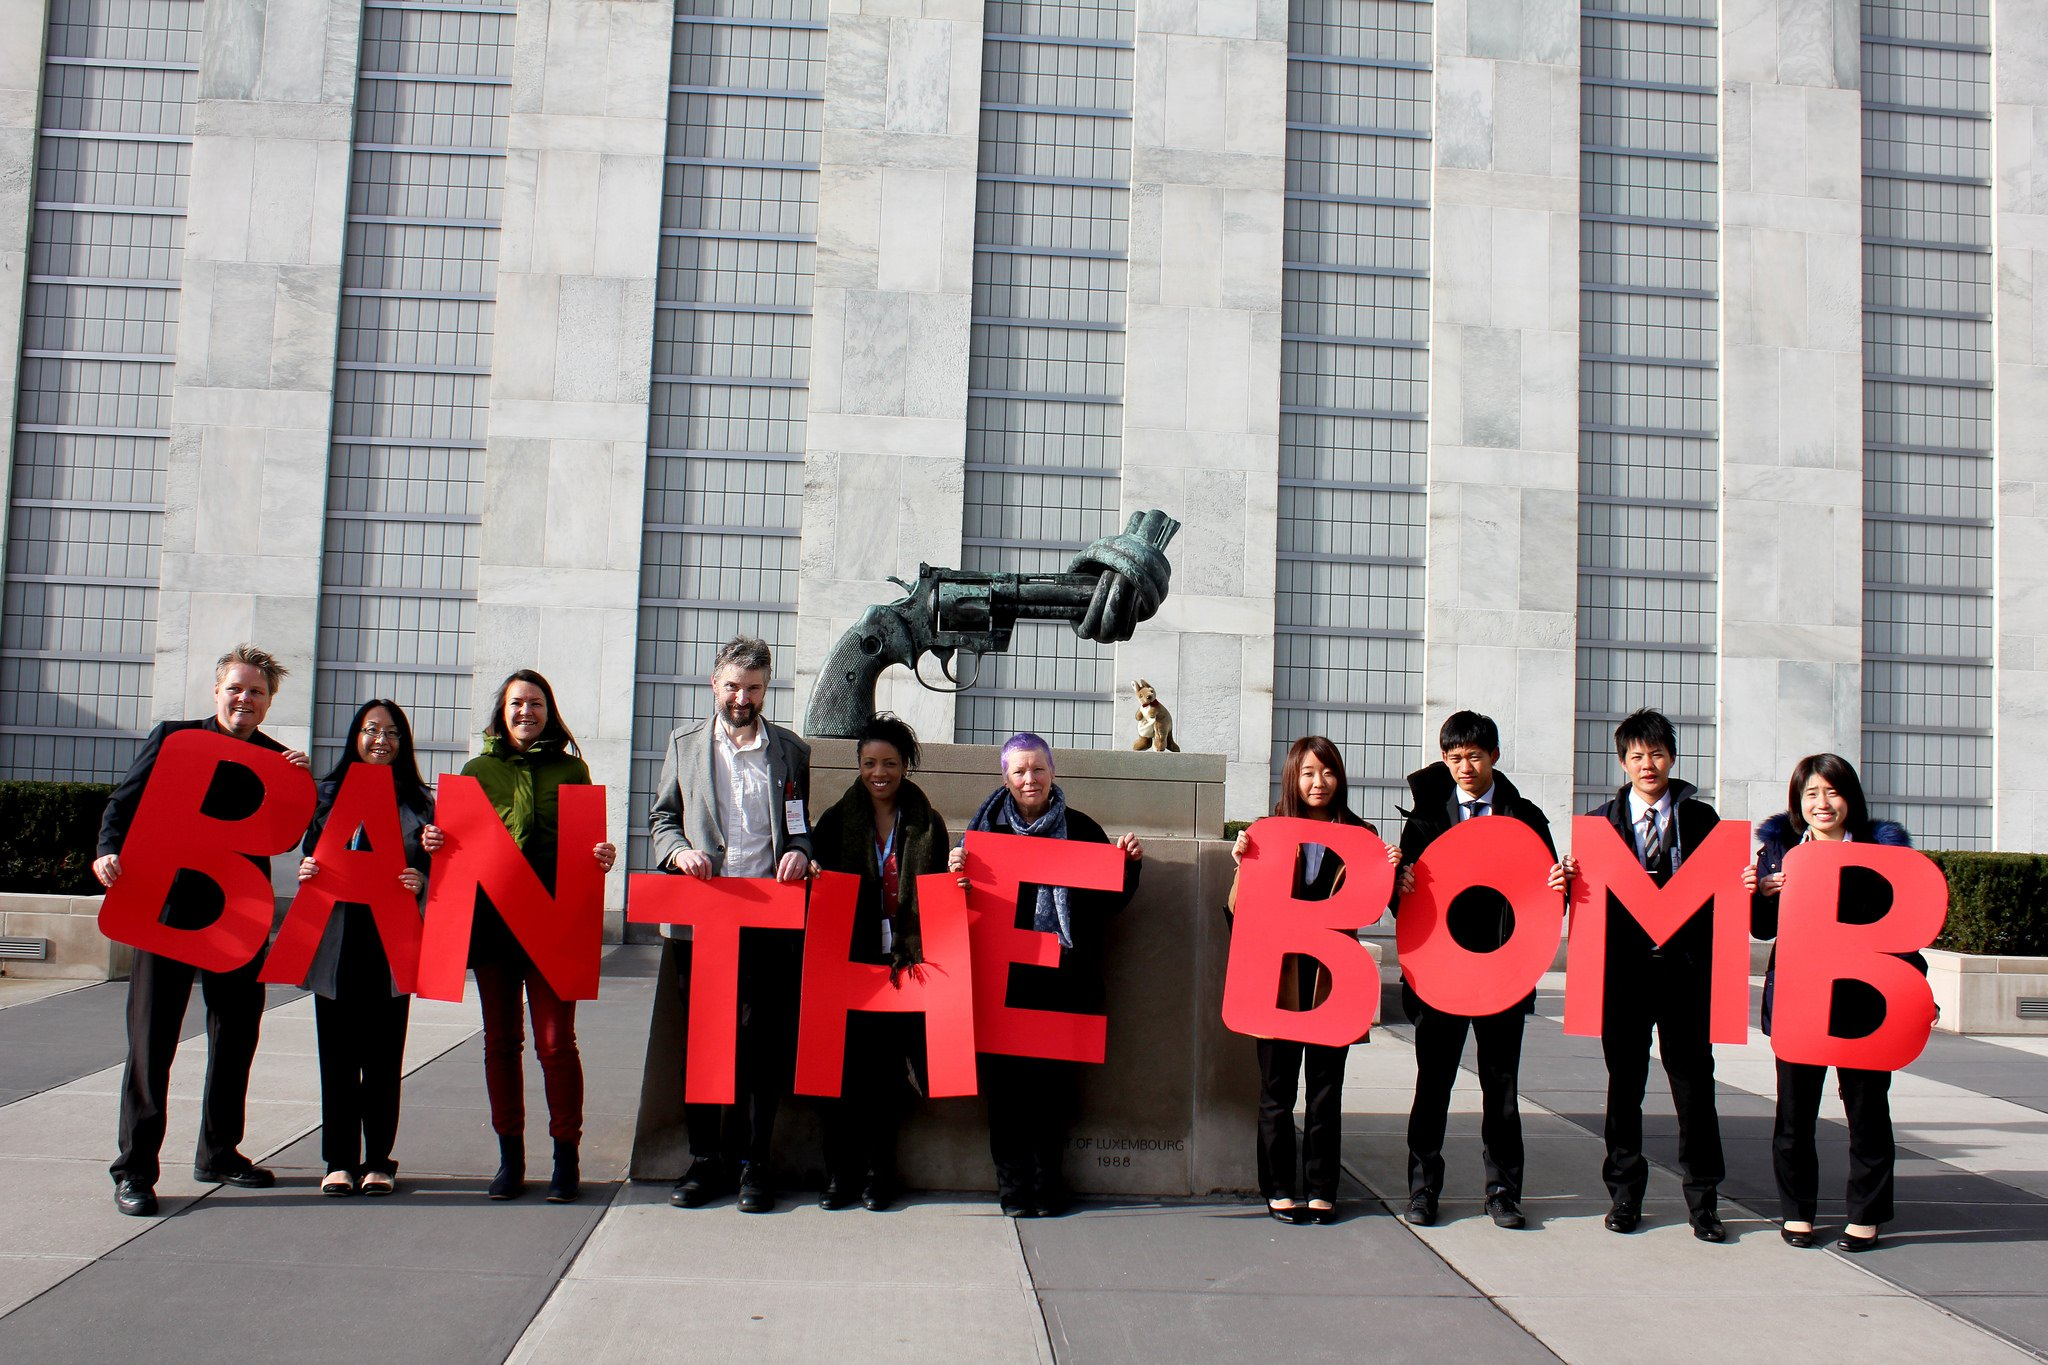 A call to action for health professionals to work towards a nuclear weapons ban